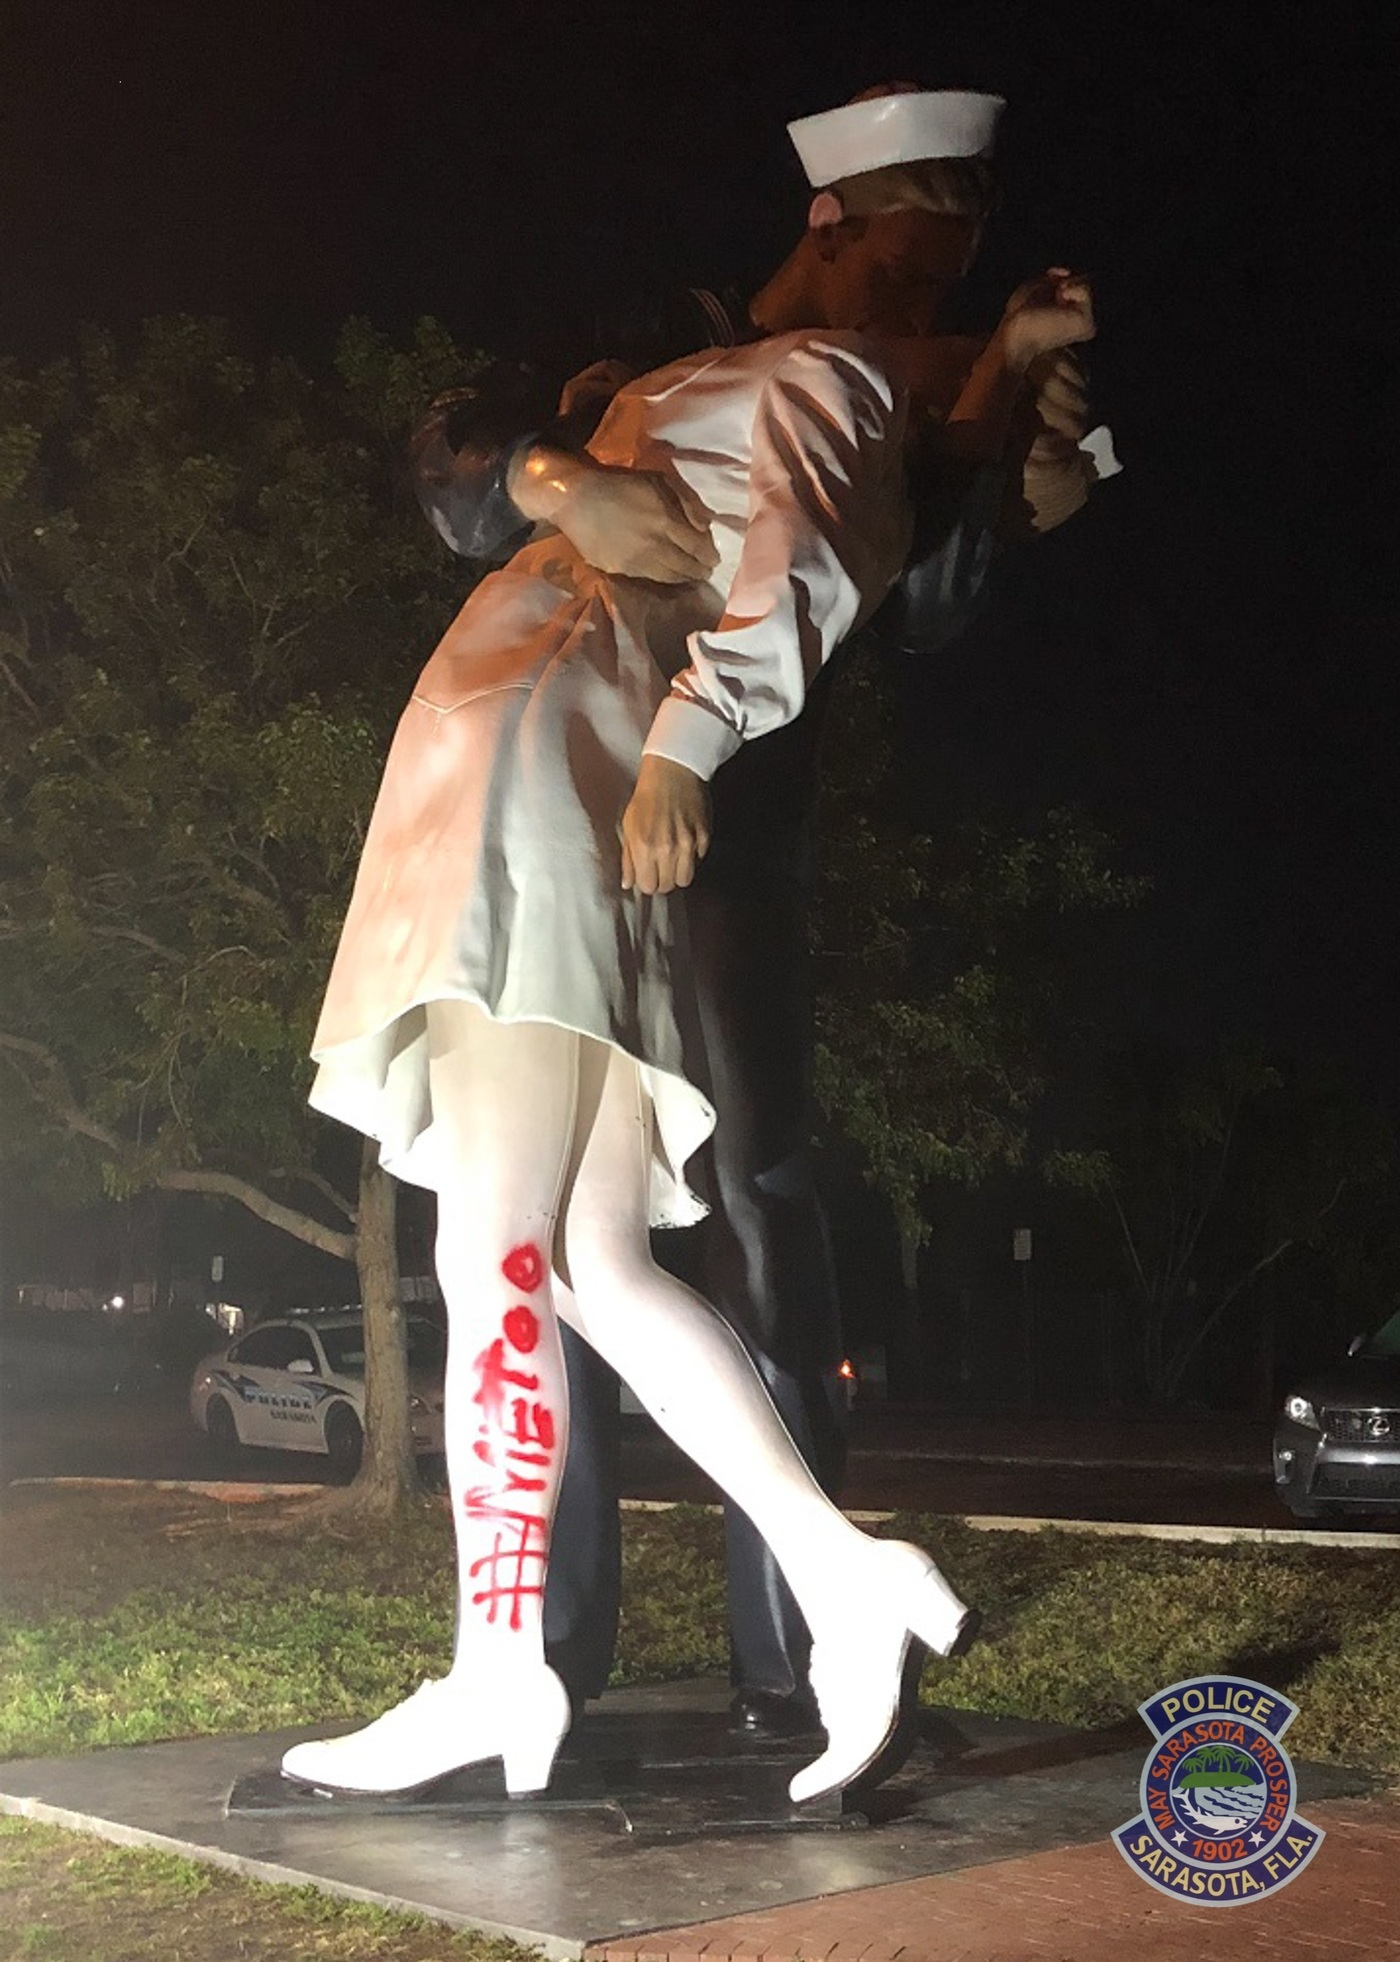 Statue of kissing VJ Day sailor vandalized with MeToo day